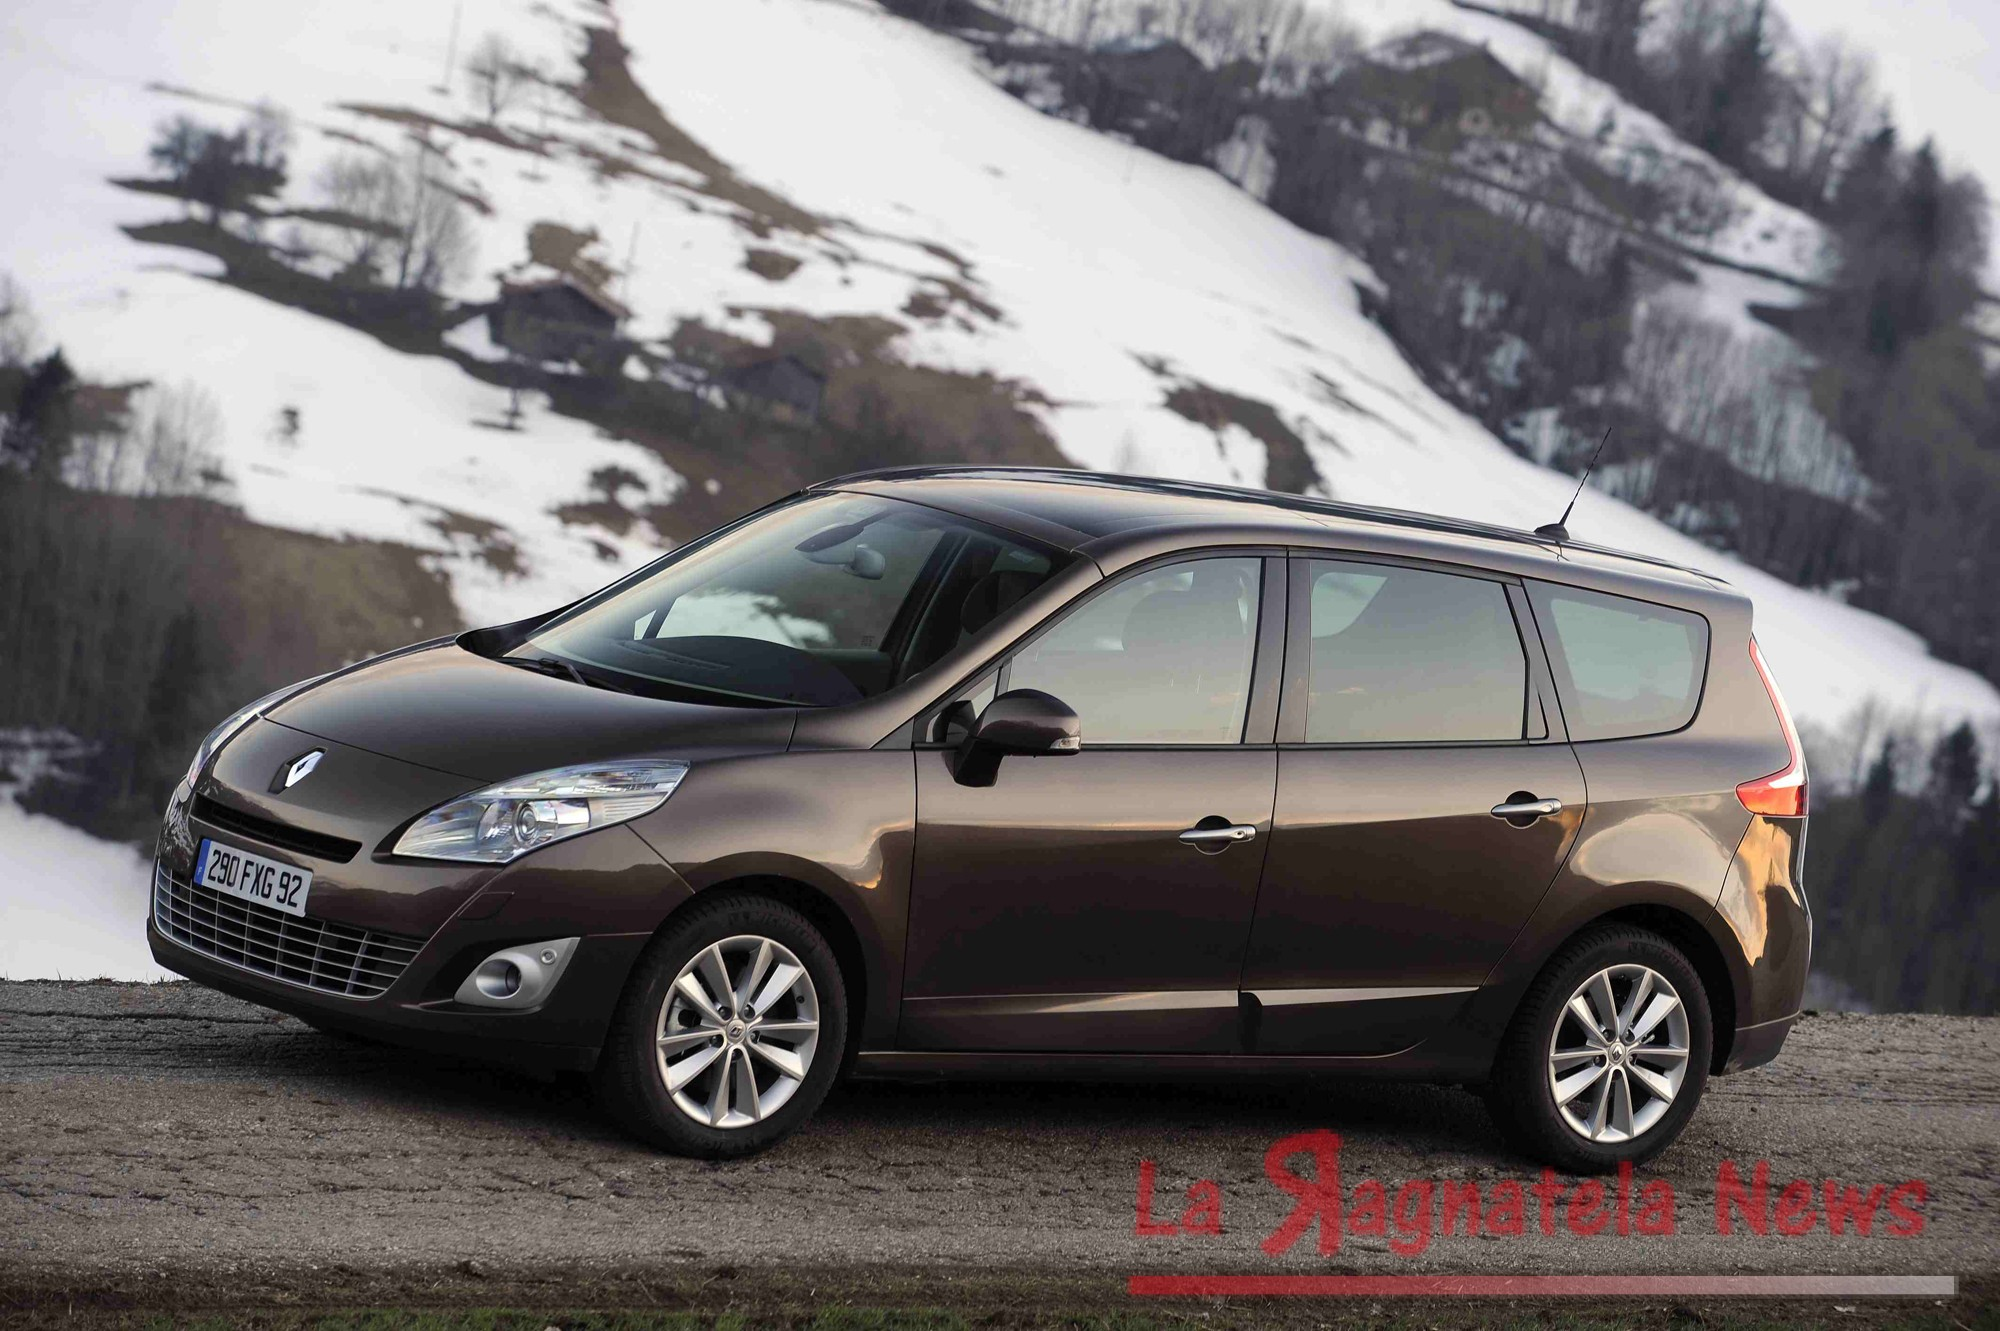 renault scenic 3 7 posti la ragnatela news. Black Bedroom Furniture Sets. Home Design Ideas